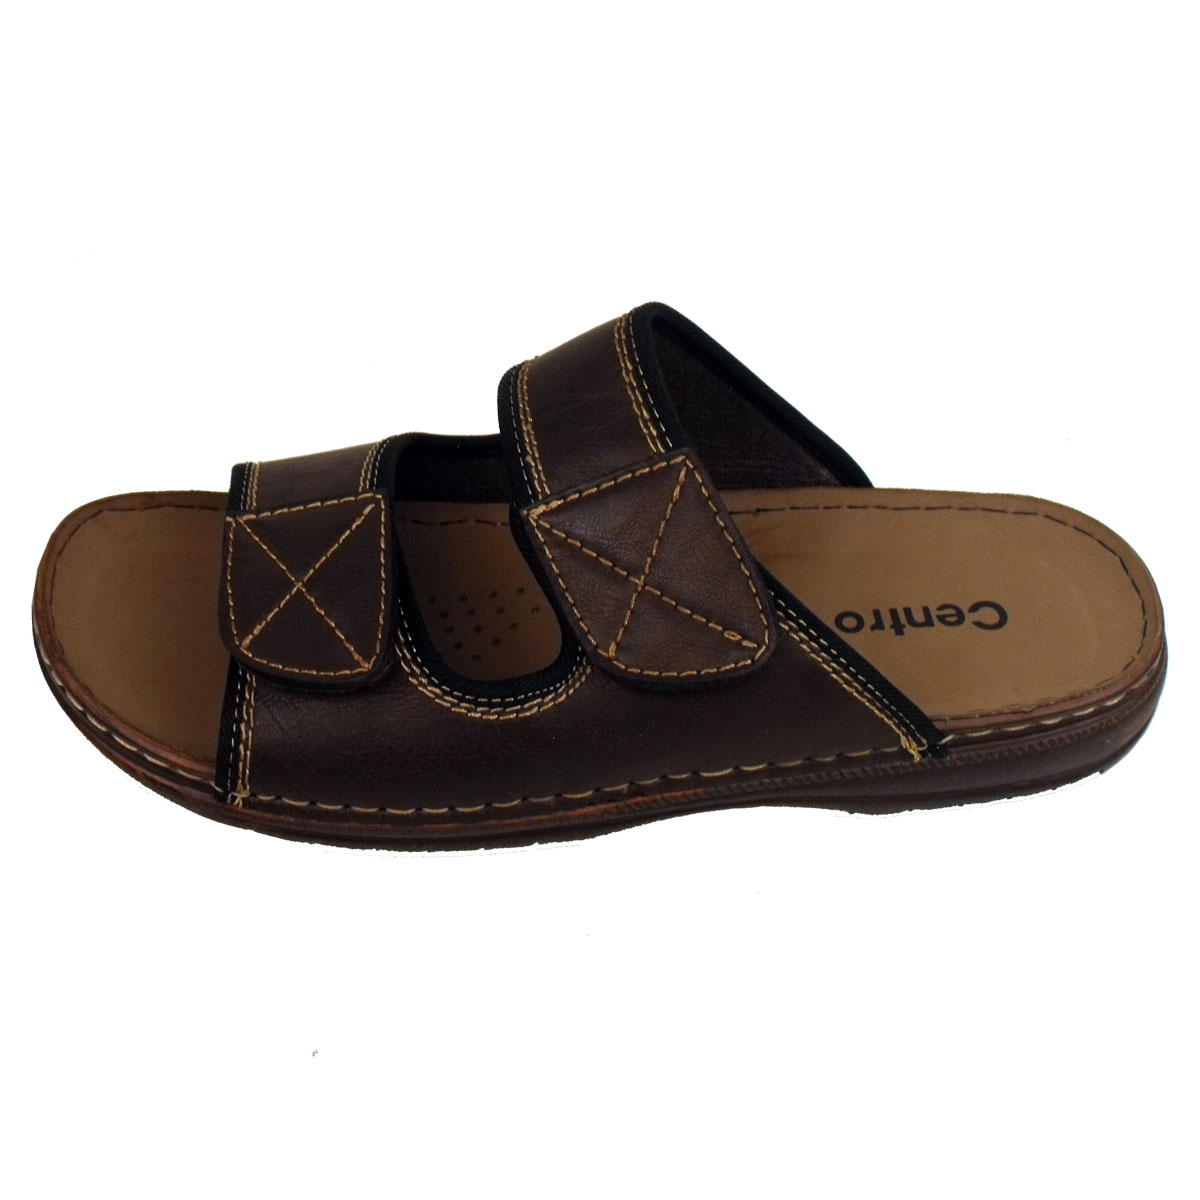 Mens Mules Sandals Faux Leather Smart Slip On Velcro